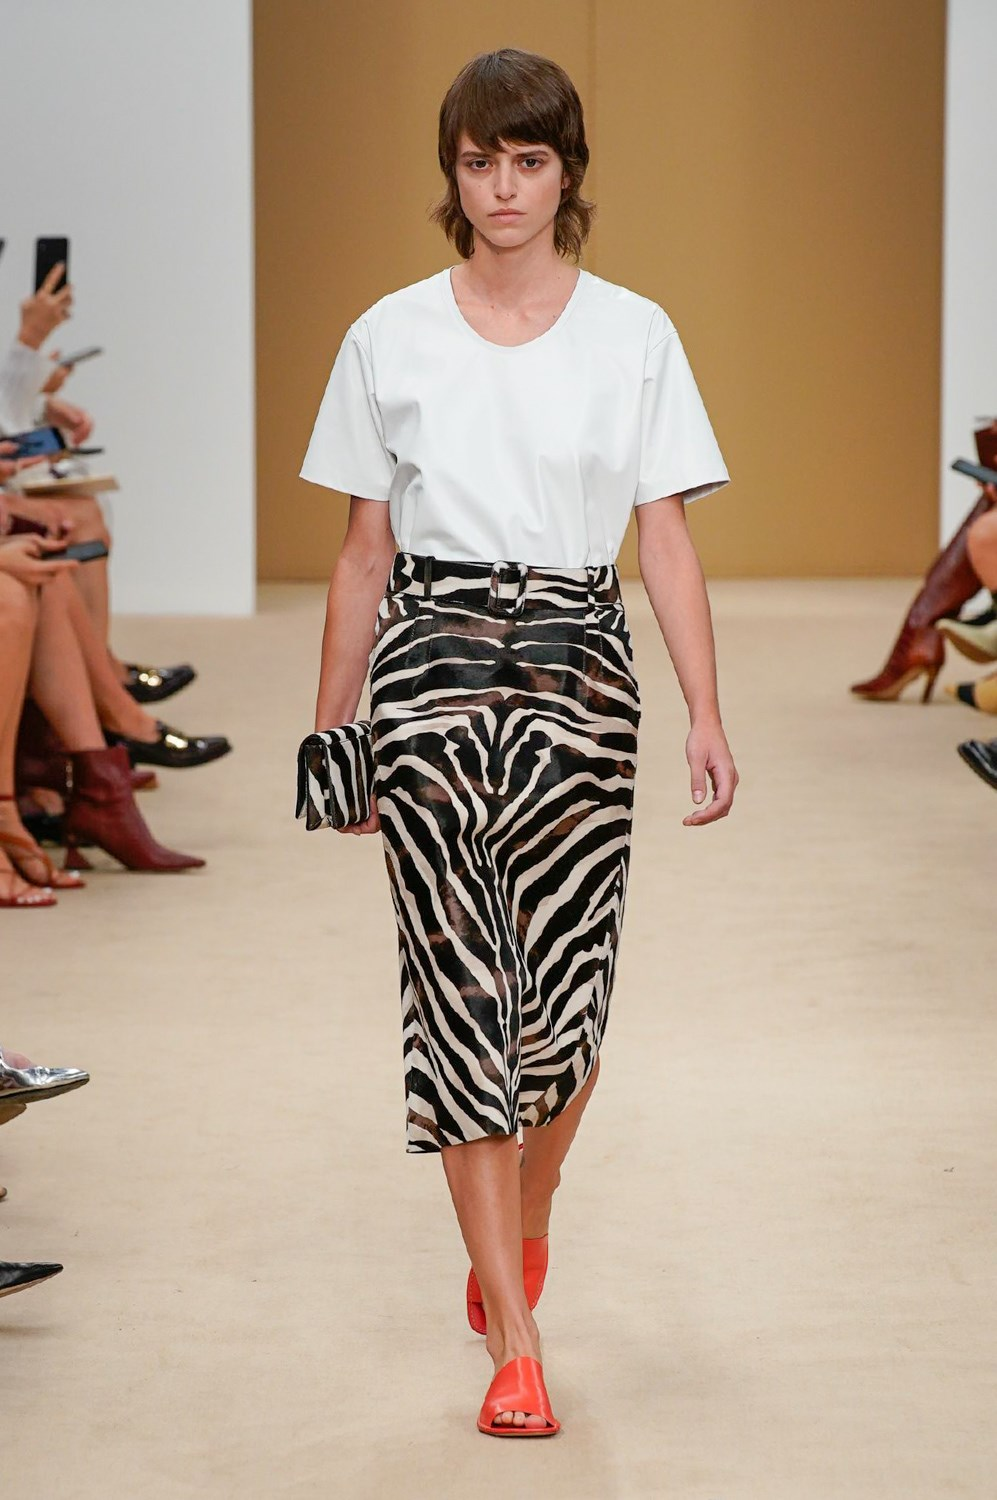 Pencil Skirt Spring 2020 Fashion Trend